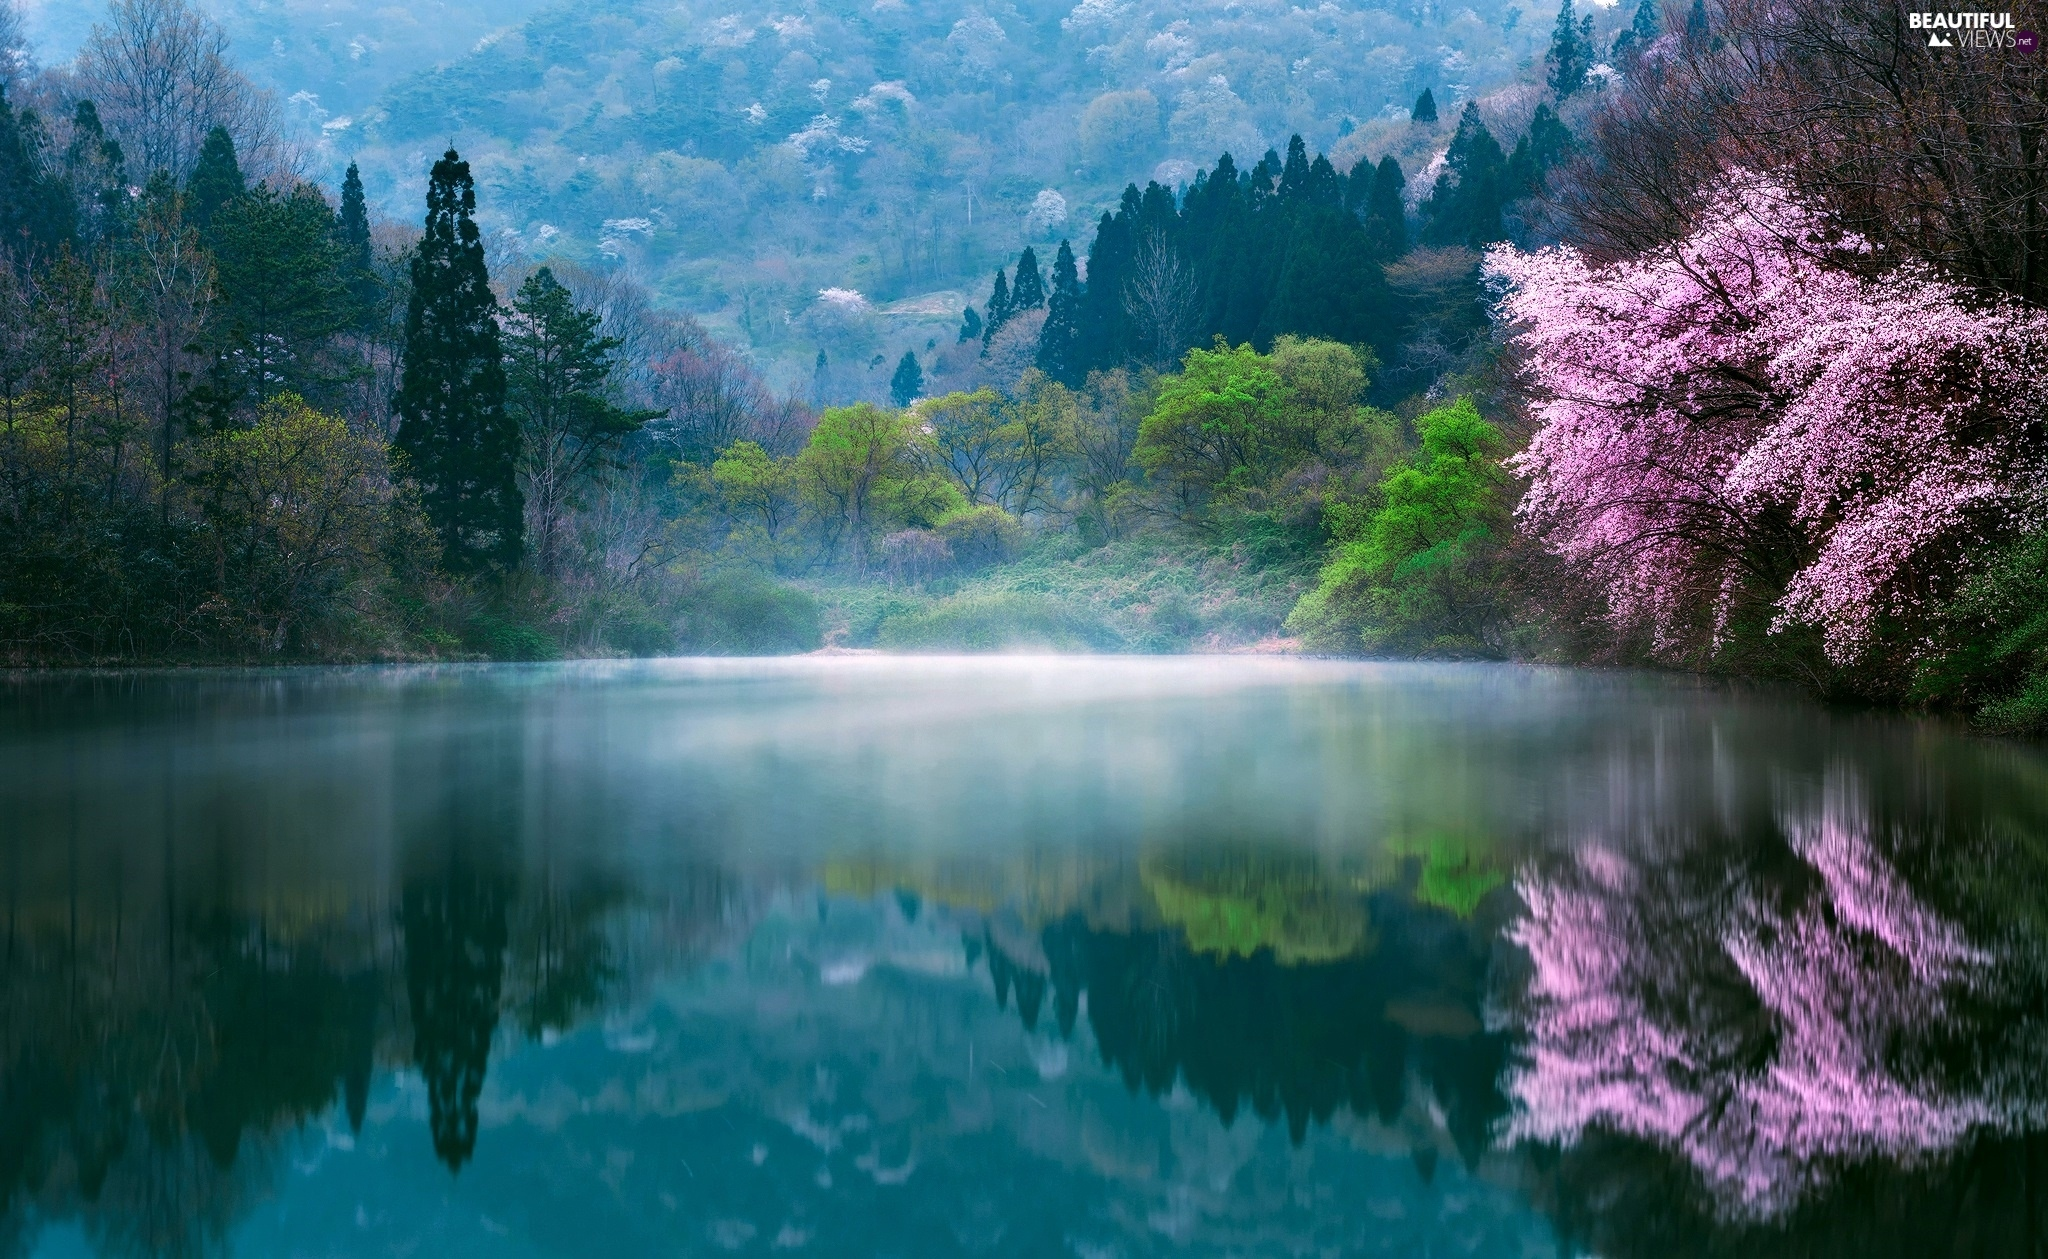 morning, Spring, trees, lake, South Korea, Fog, viewes